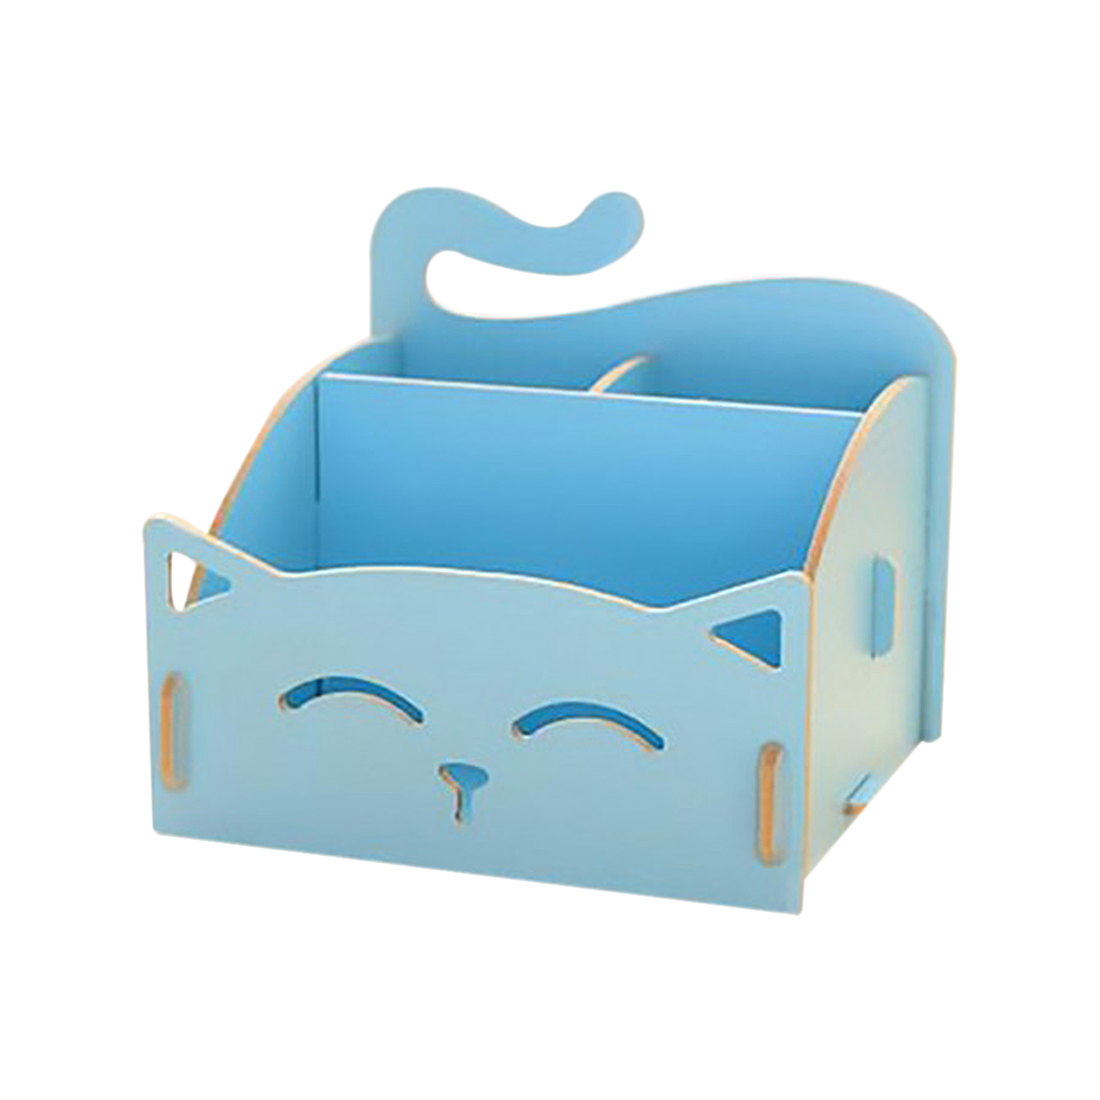 Best Wooden Box Cute Cat Pen Box Desktop Storage Assembly DIY Wood Makeup Organizer Cosmetics Storage Box 15.4*13*13.5cm (BLUE)